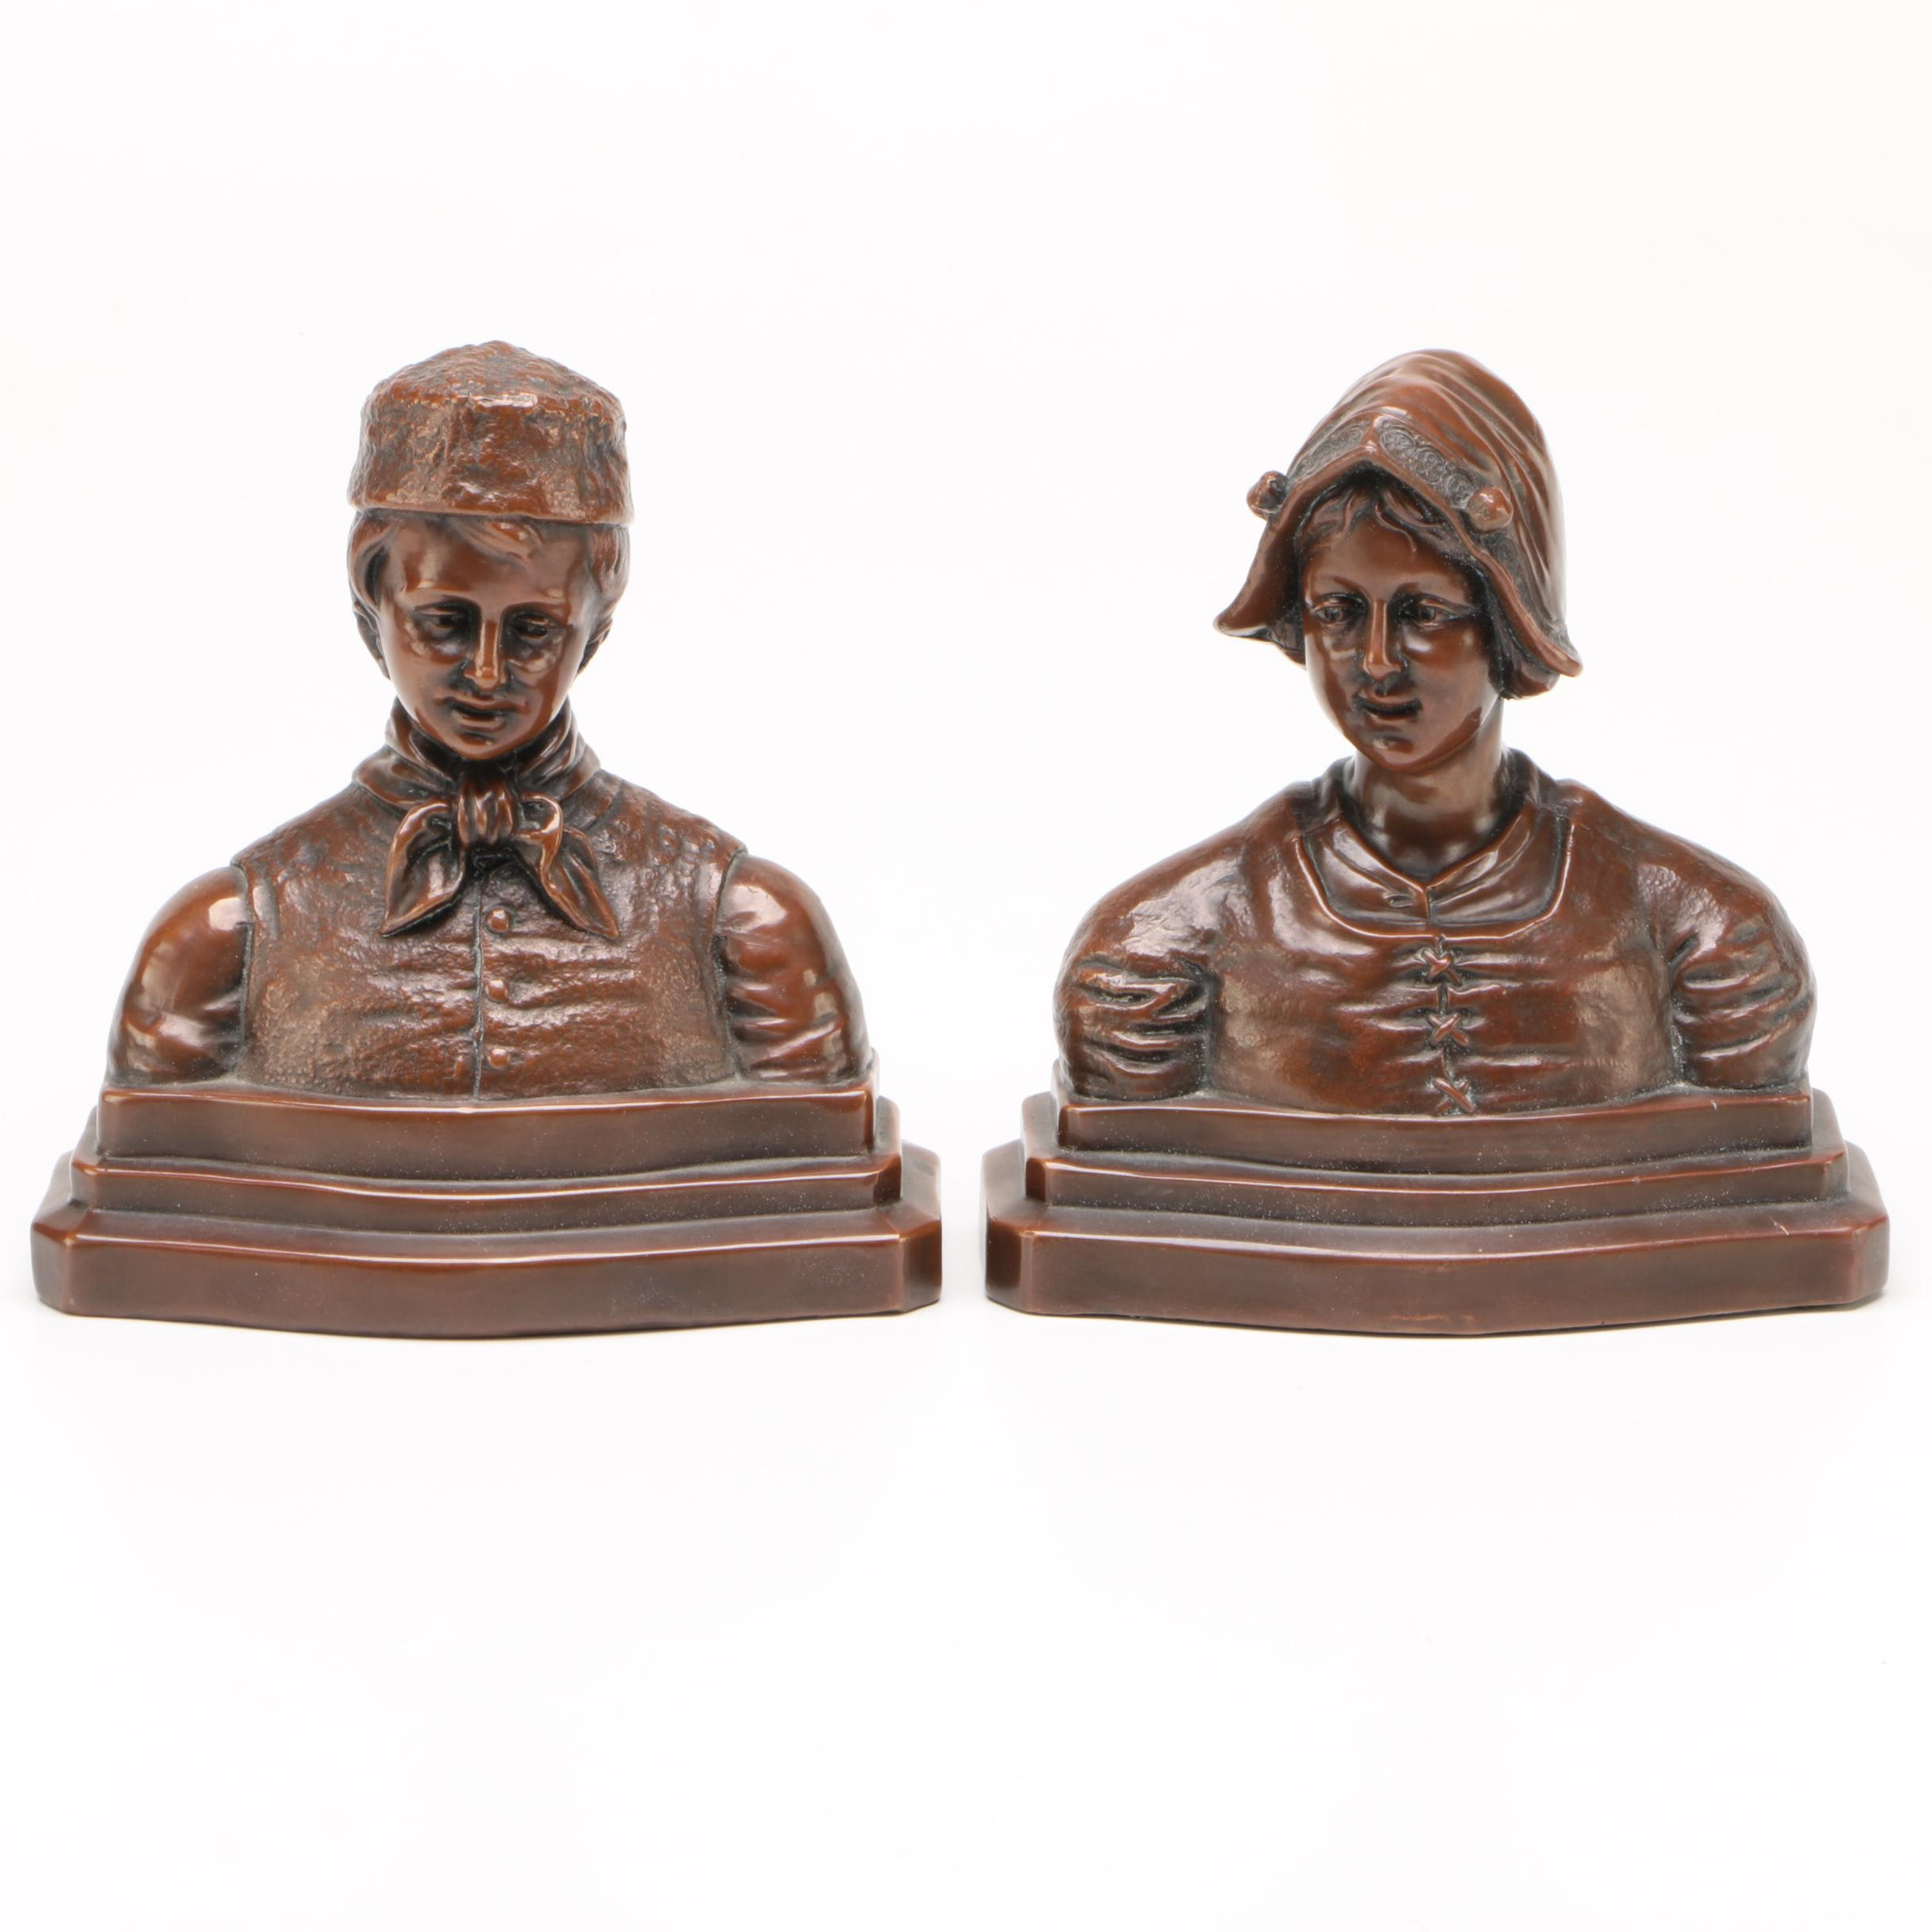 Cast Metal Busts of Folk Dutch Figures Bookends After Armour Bronze